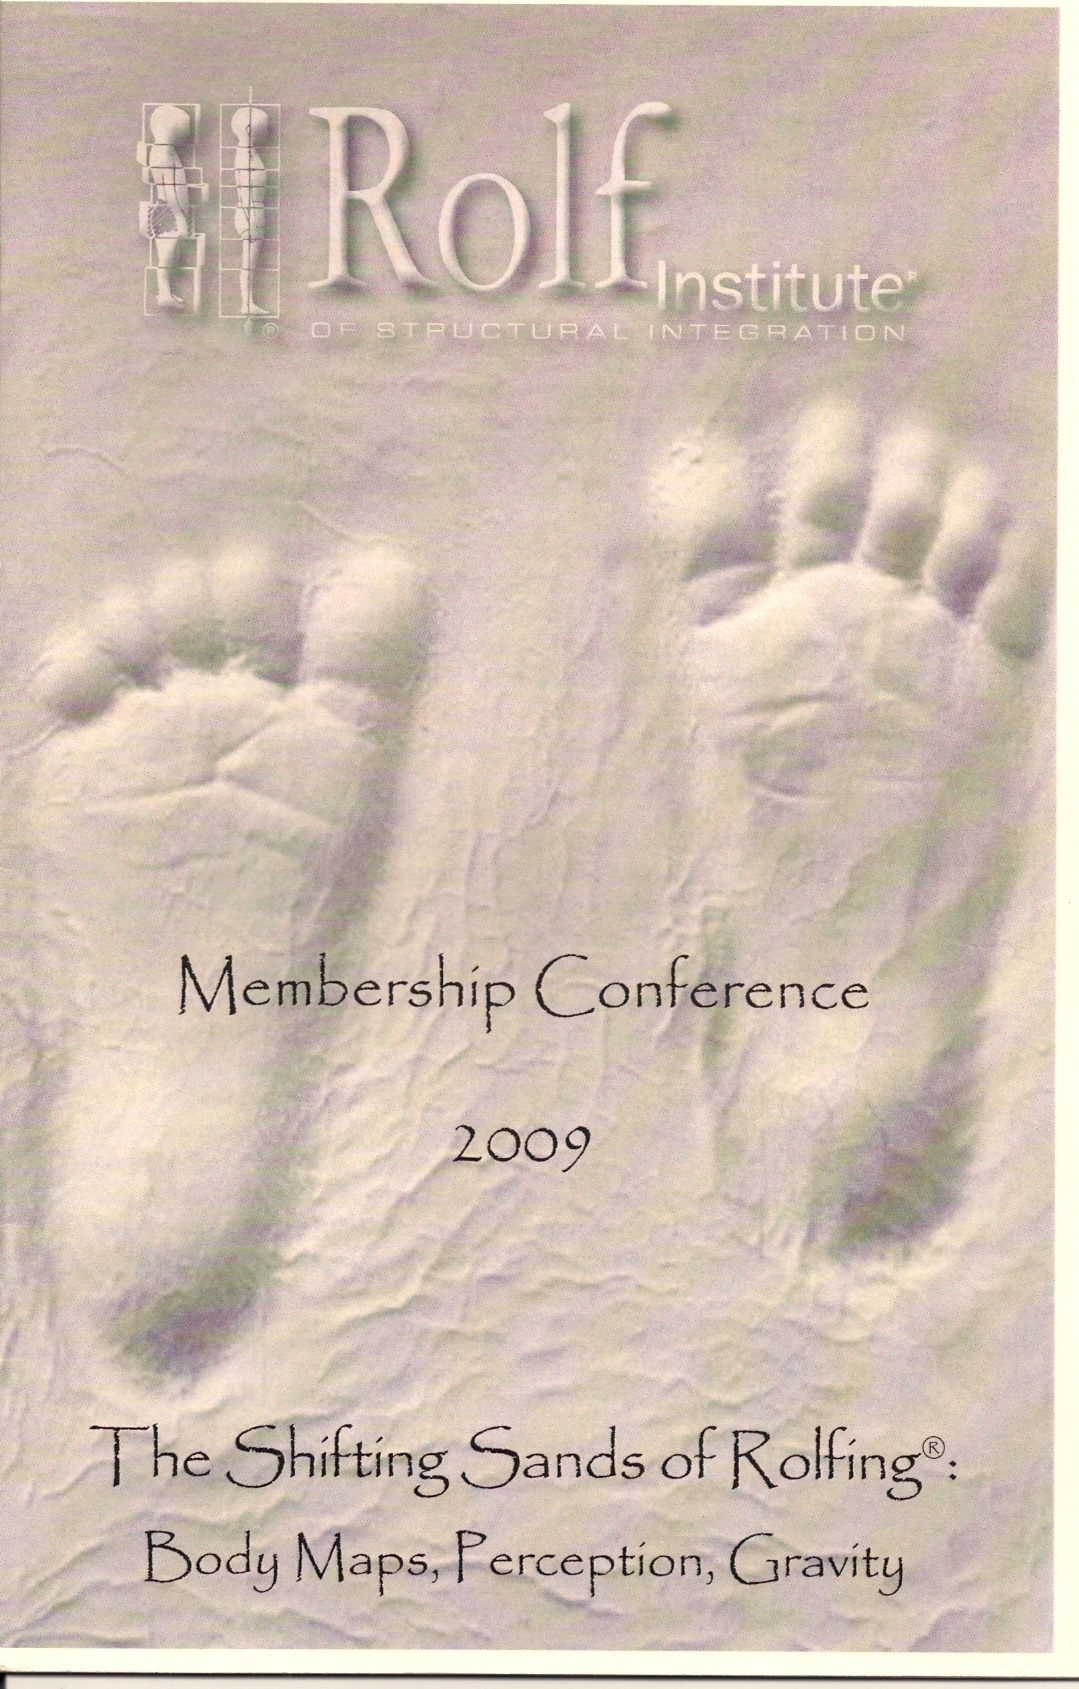 Rolf Institute 2009 Membership Conference Program